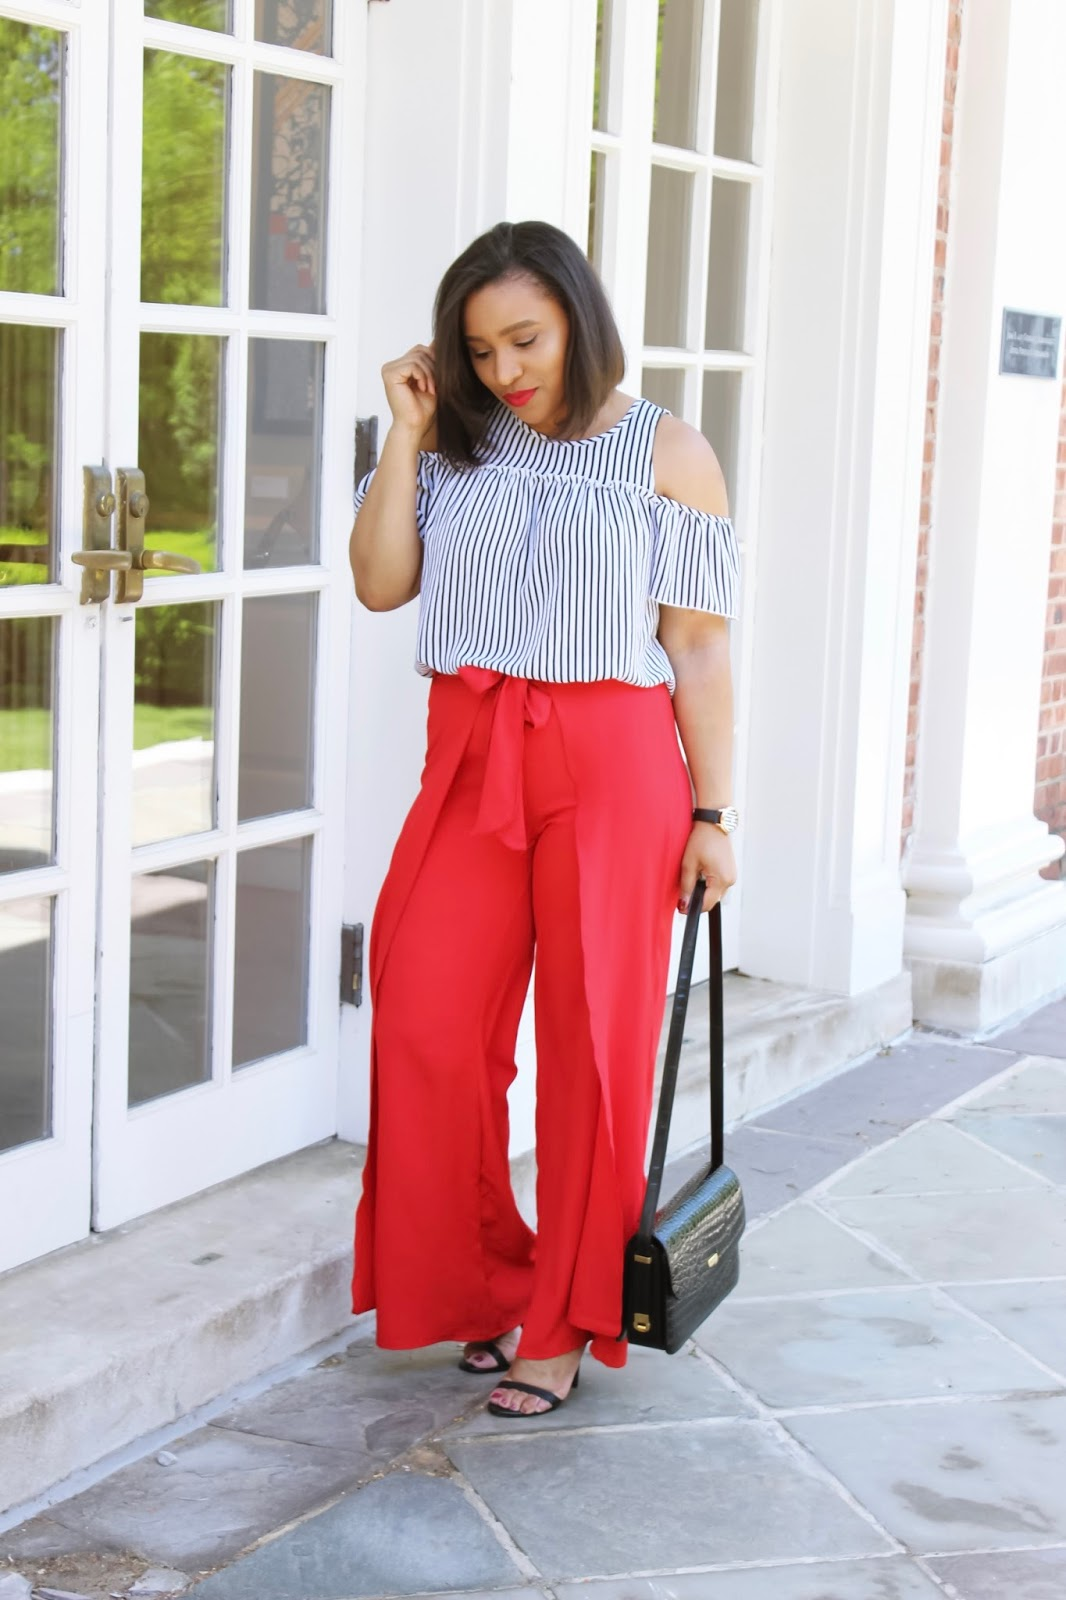 Chiffon Wrap Palazzo Pants, red pants, off the shoulder, summer looks, cold shoulder, striped summer tops, flower eyewear sunglasses, summer outfit ideas, wide leg pant, red pants